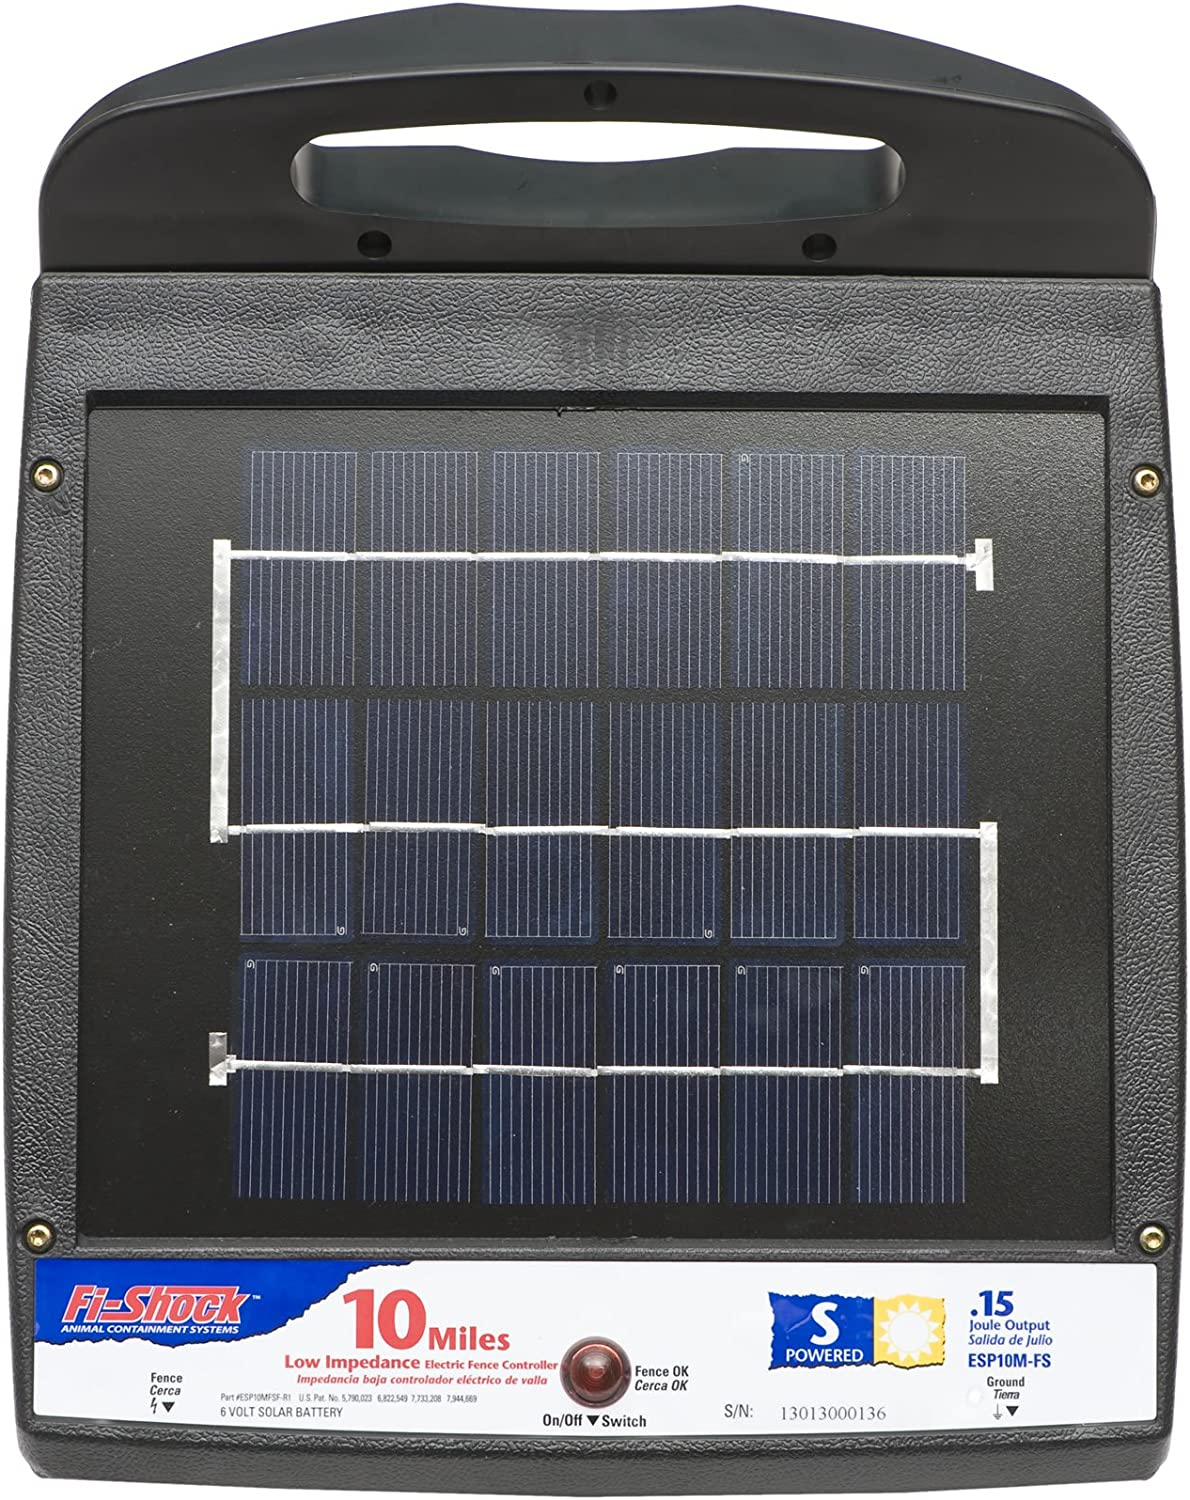 Fi-Shock ESP10M-FS National products 10-Mile Dedication Solar Powered Electric Low Impedance